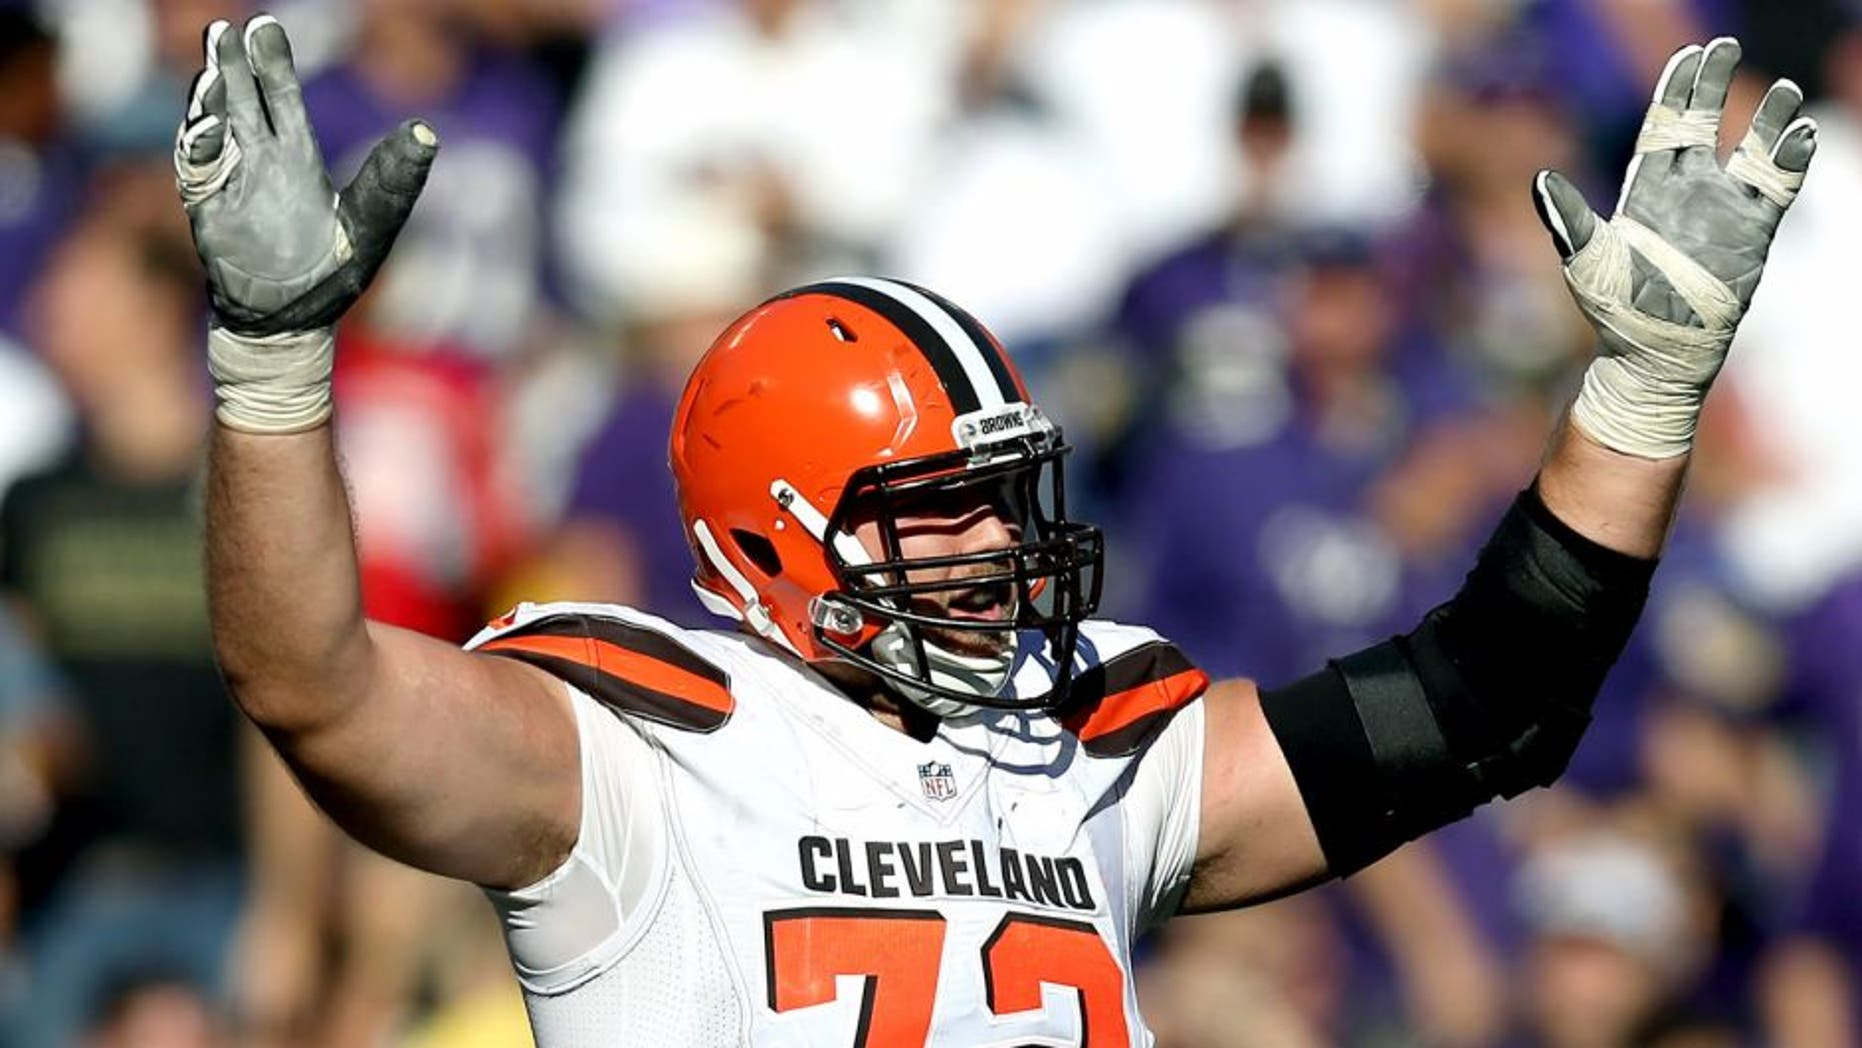 BALTIMORE, MD - OCTOBER 11: Tackle Mitchell Schwartz #72 of the Cleveland Browns celebrates after a fourth quarter touchdown during a game against the Baltimore Ravens at M&T Bank Stadium on October 11, 2015 in Baltimore, Maryland. (Photo by Patrick Smith/Getty Images)